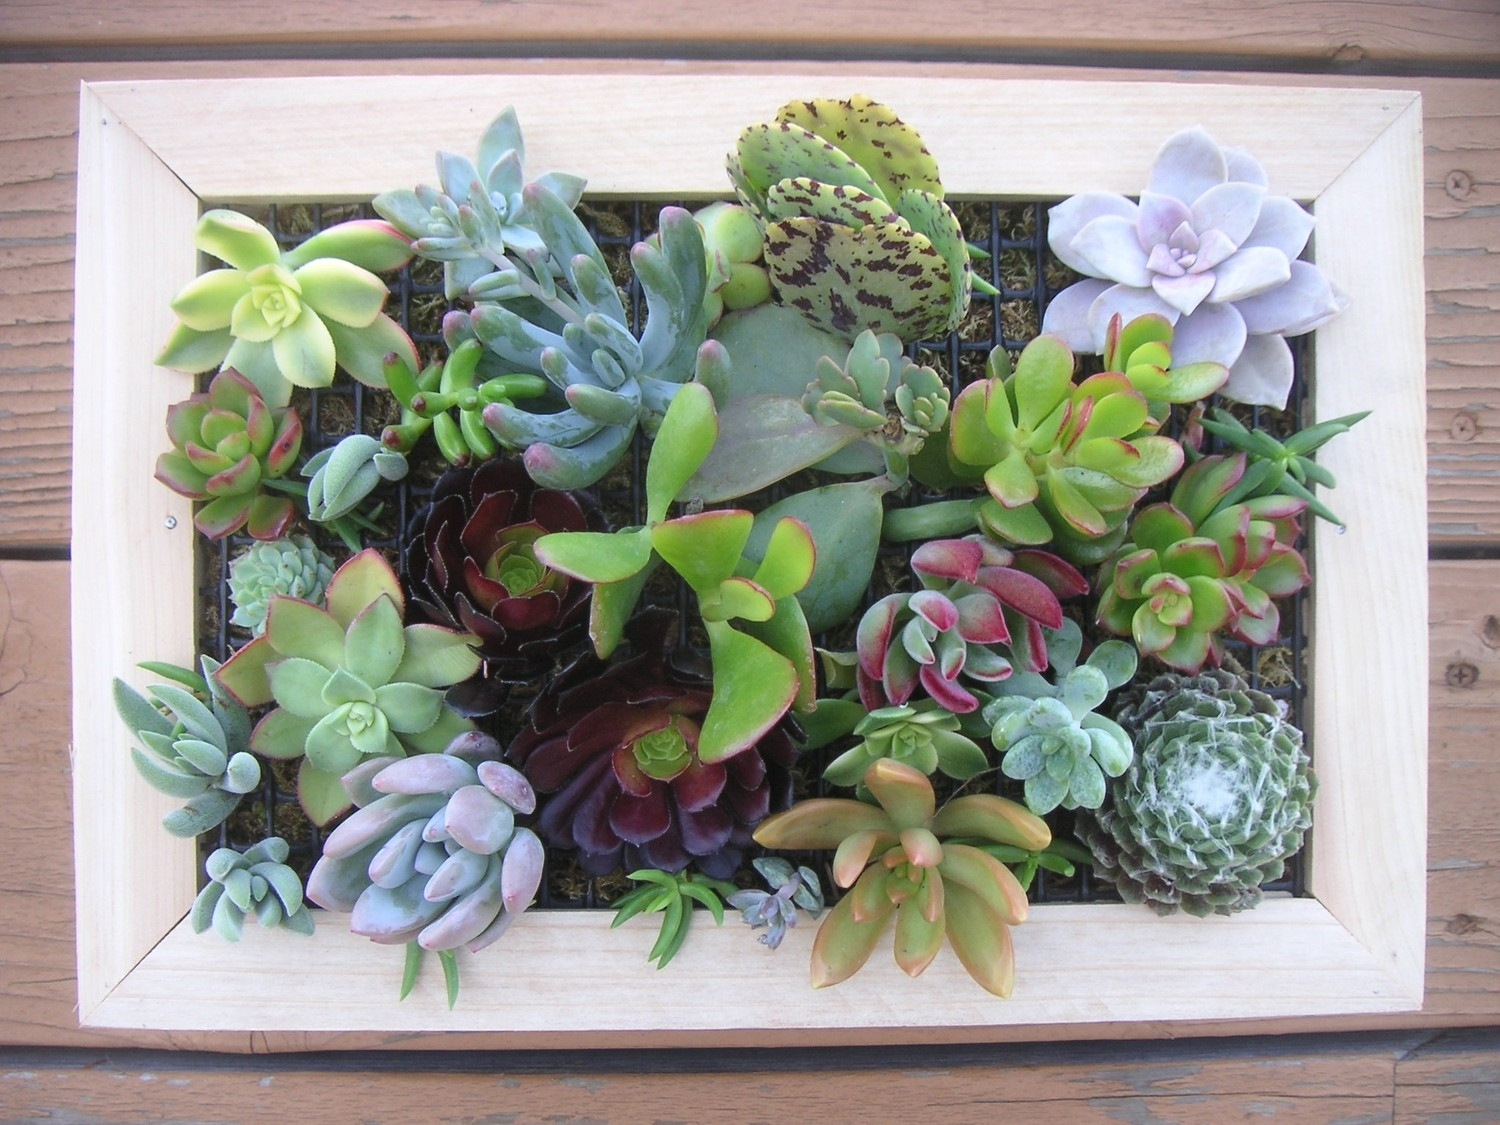 97 Living Wall Art Succulents An Old Picture Frame In Living Wall Within Most Current Succulent Wall Art (View 7 of 20)